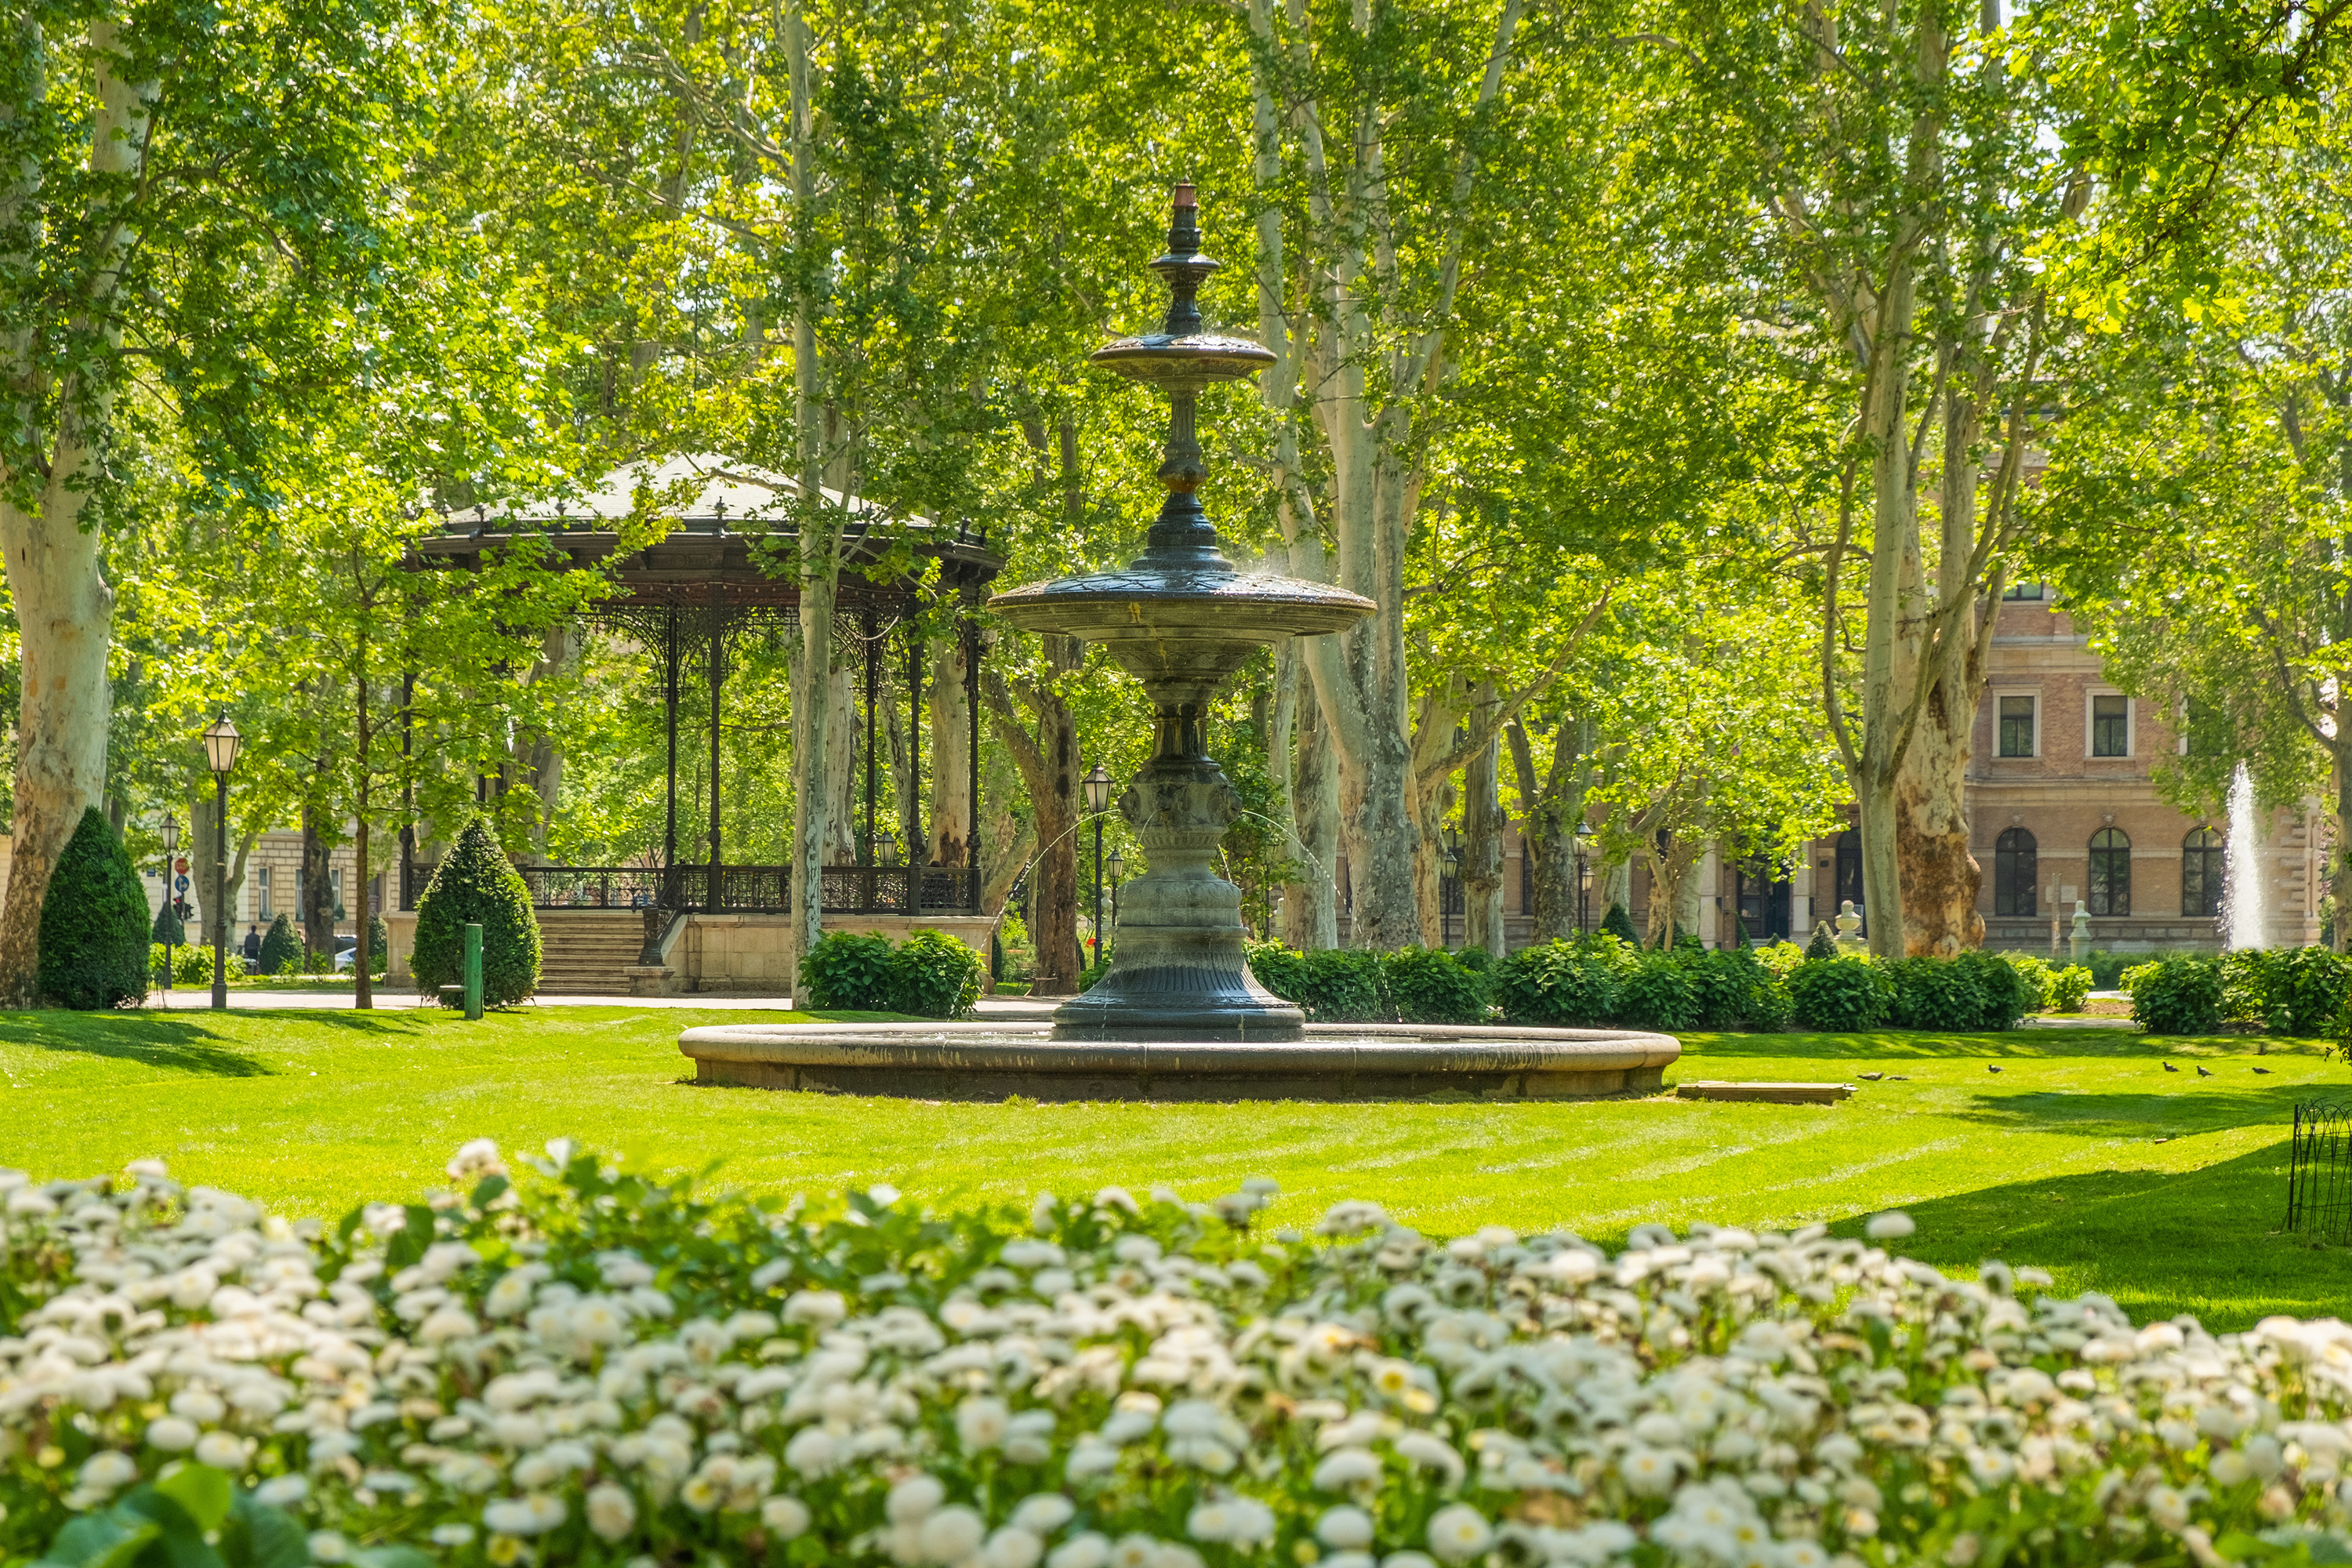 Find healing in Zagreb's green spaces